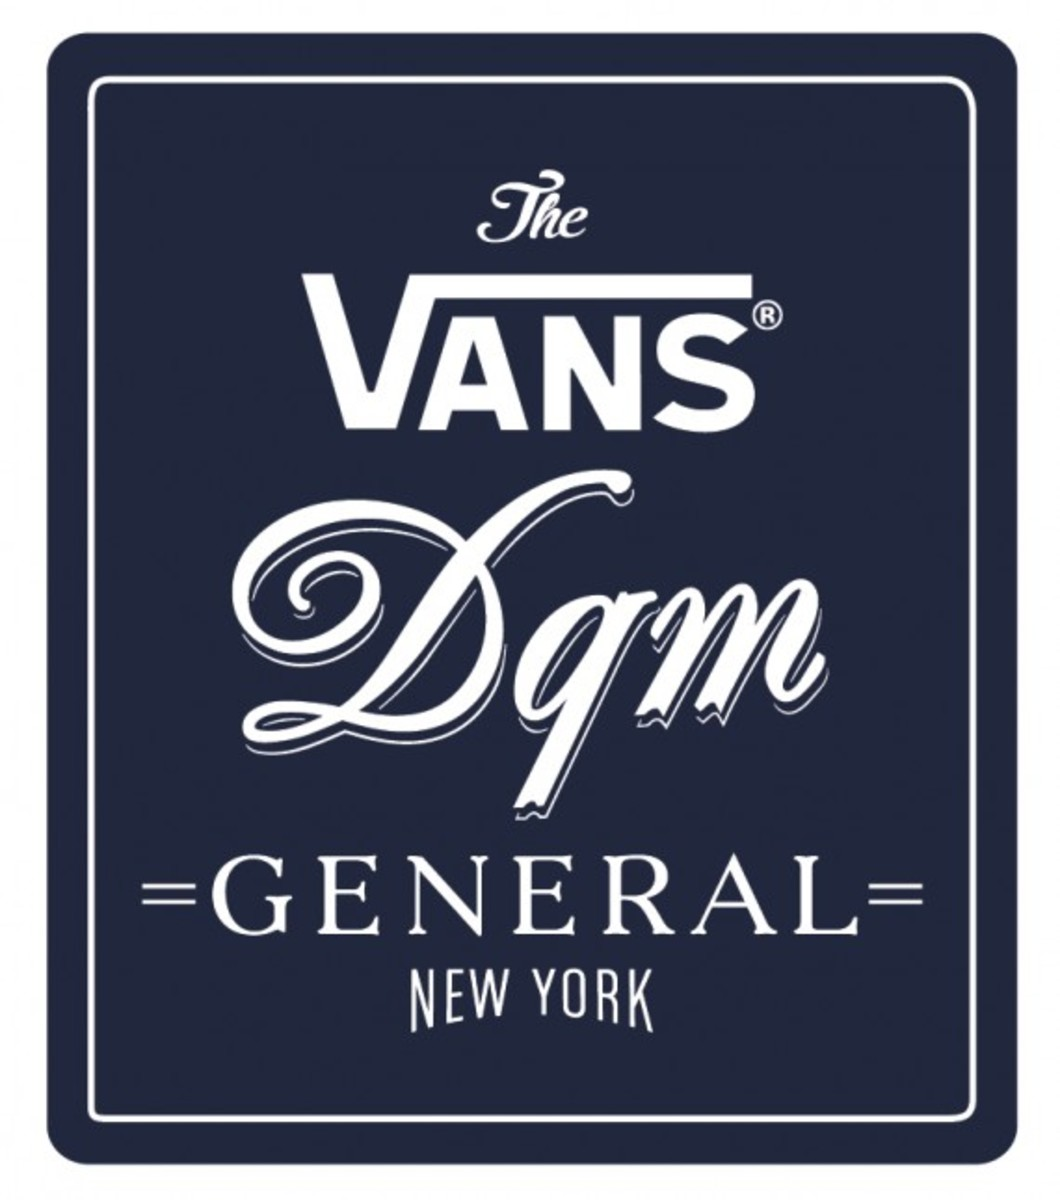 the-vans-dqm-general-new-york-logo